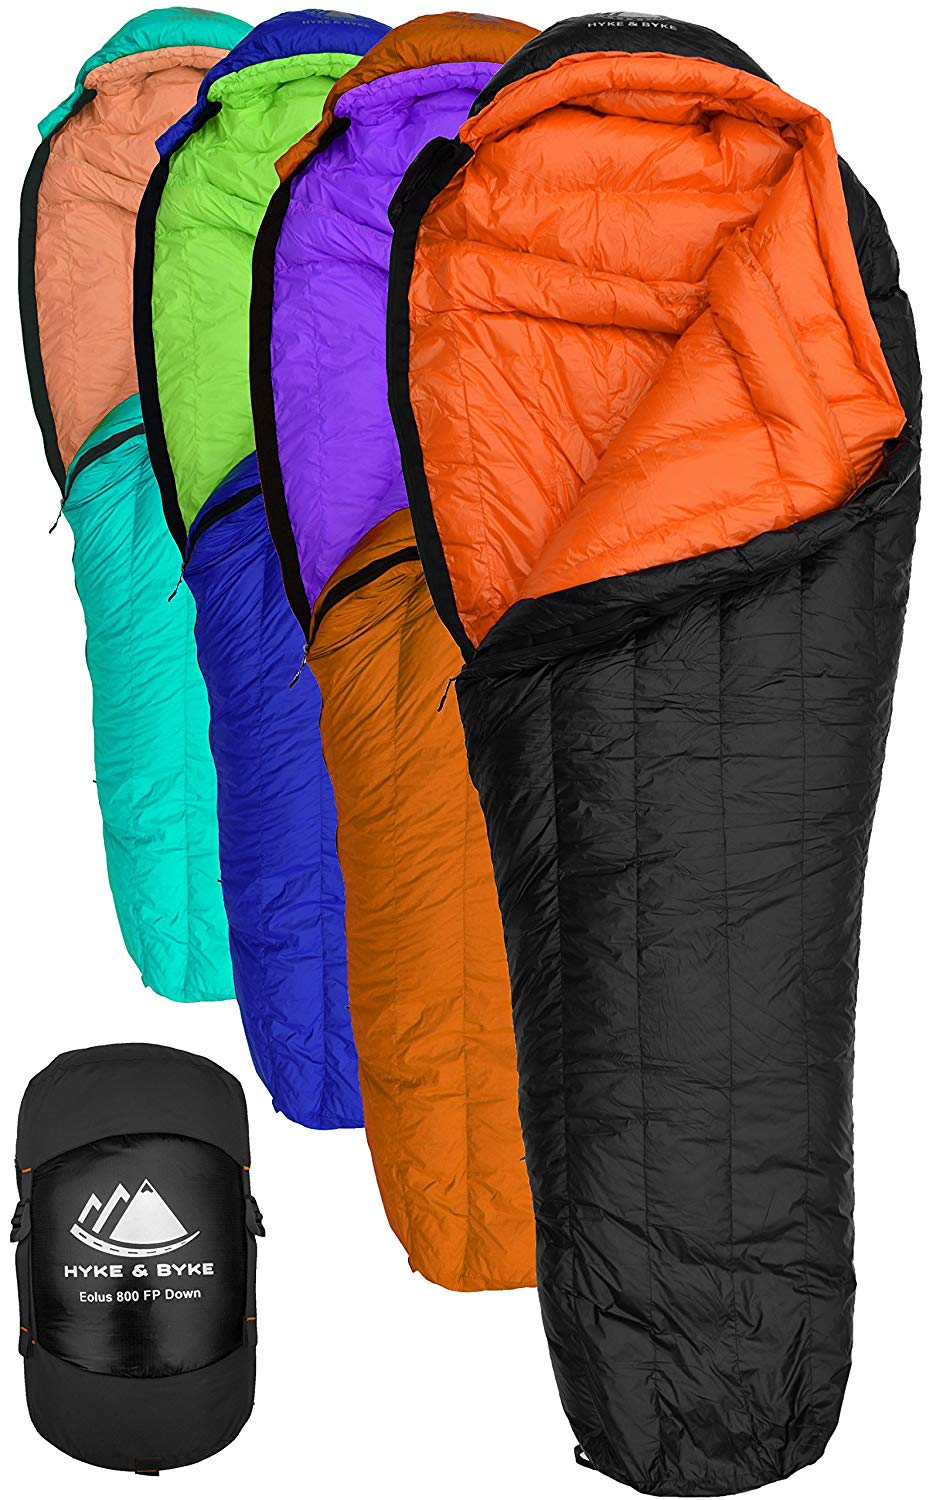 An image of Hyke & Byke Men's Nylon Ripstop Sleeping Bag